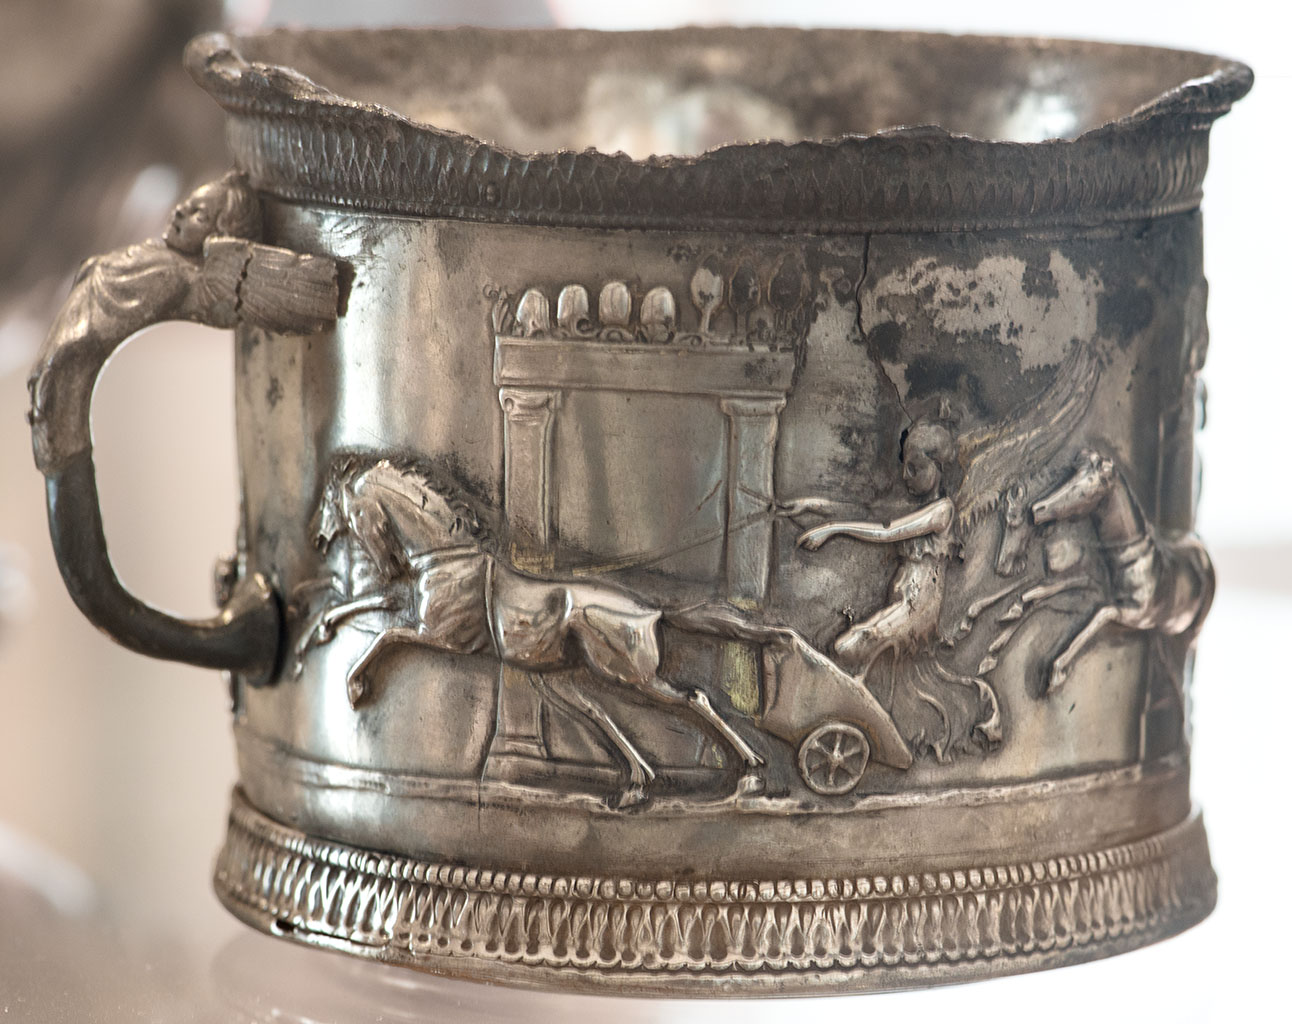 A single-handed cup with with a chariot race of amors in the Circus Maximus. Silver with traces of gilding. 1st century BCE—1st century CE. H. 8 cm, d. 9.5 cm, weight 355 g. Inv. No. 145510. Naples, National Archaeological Museum